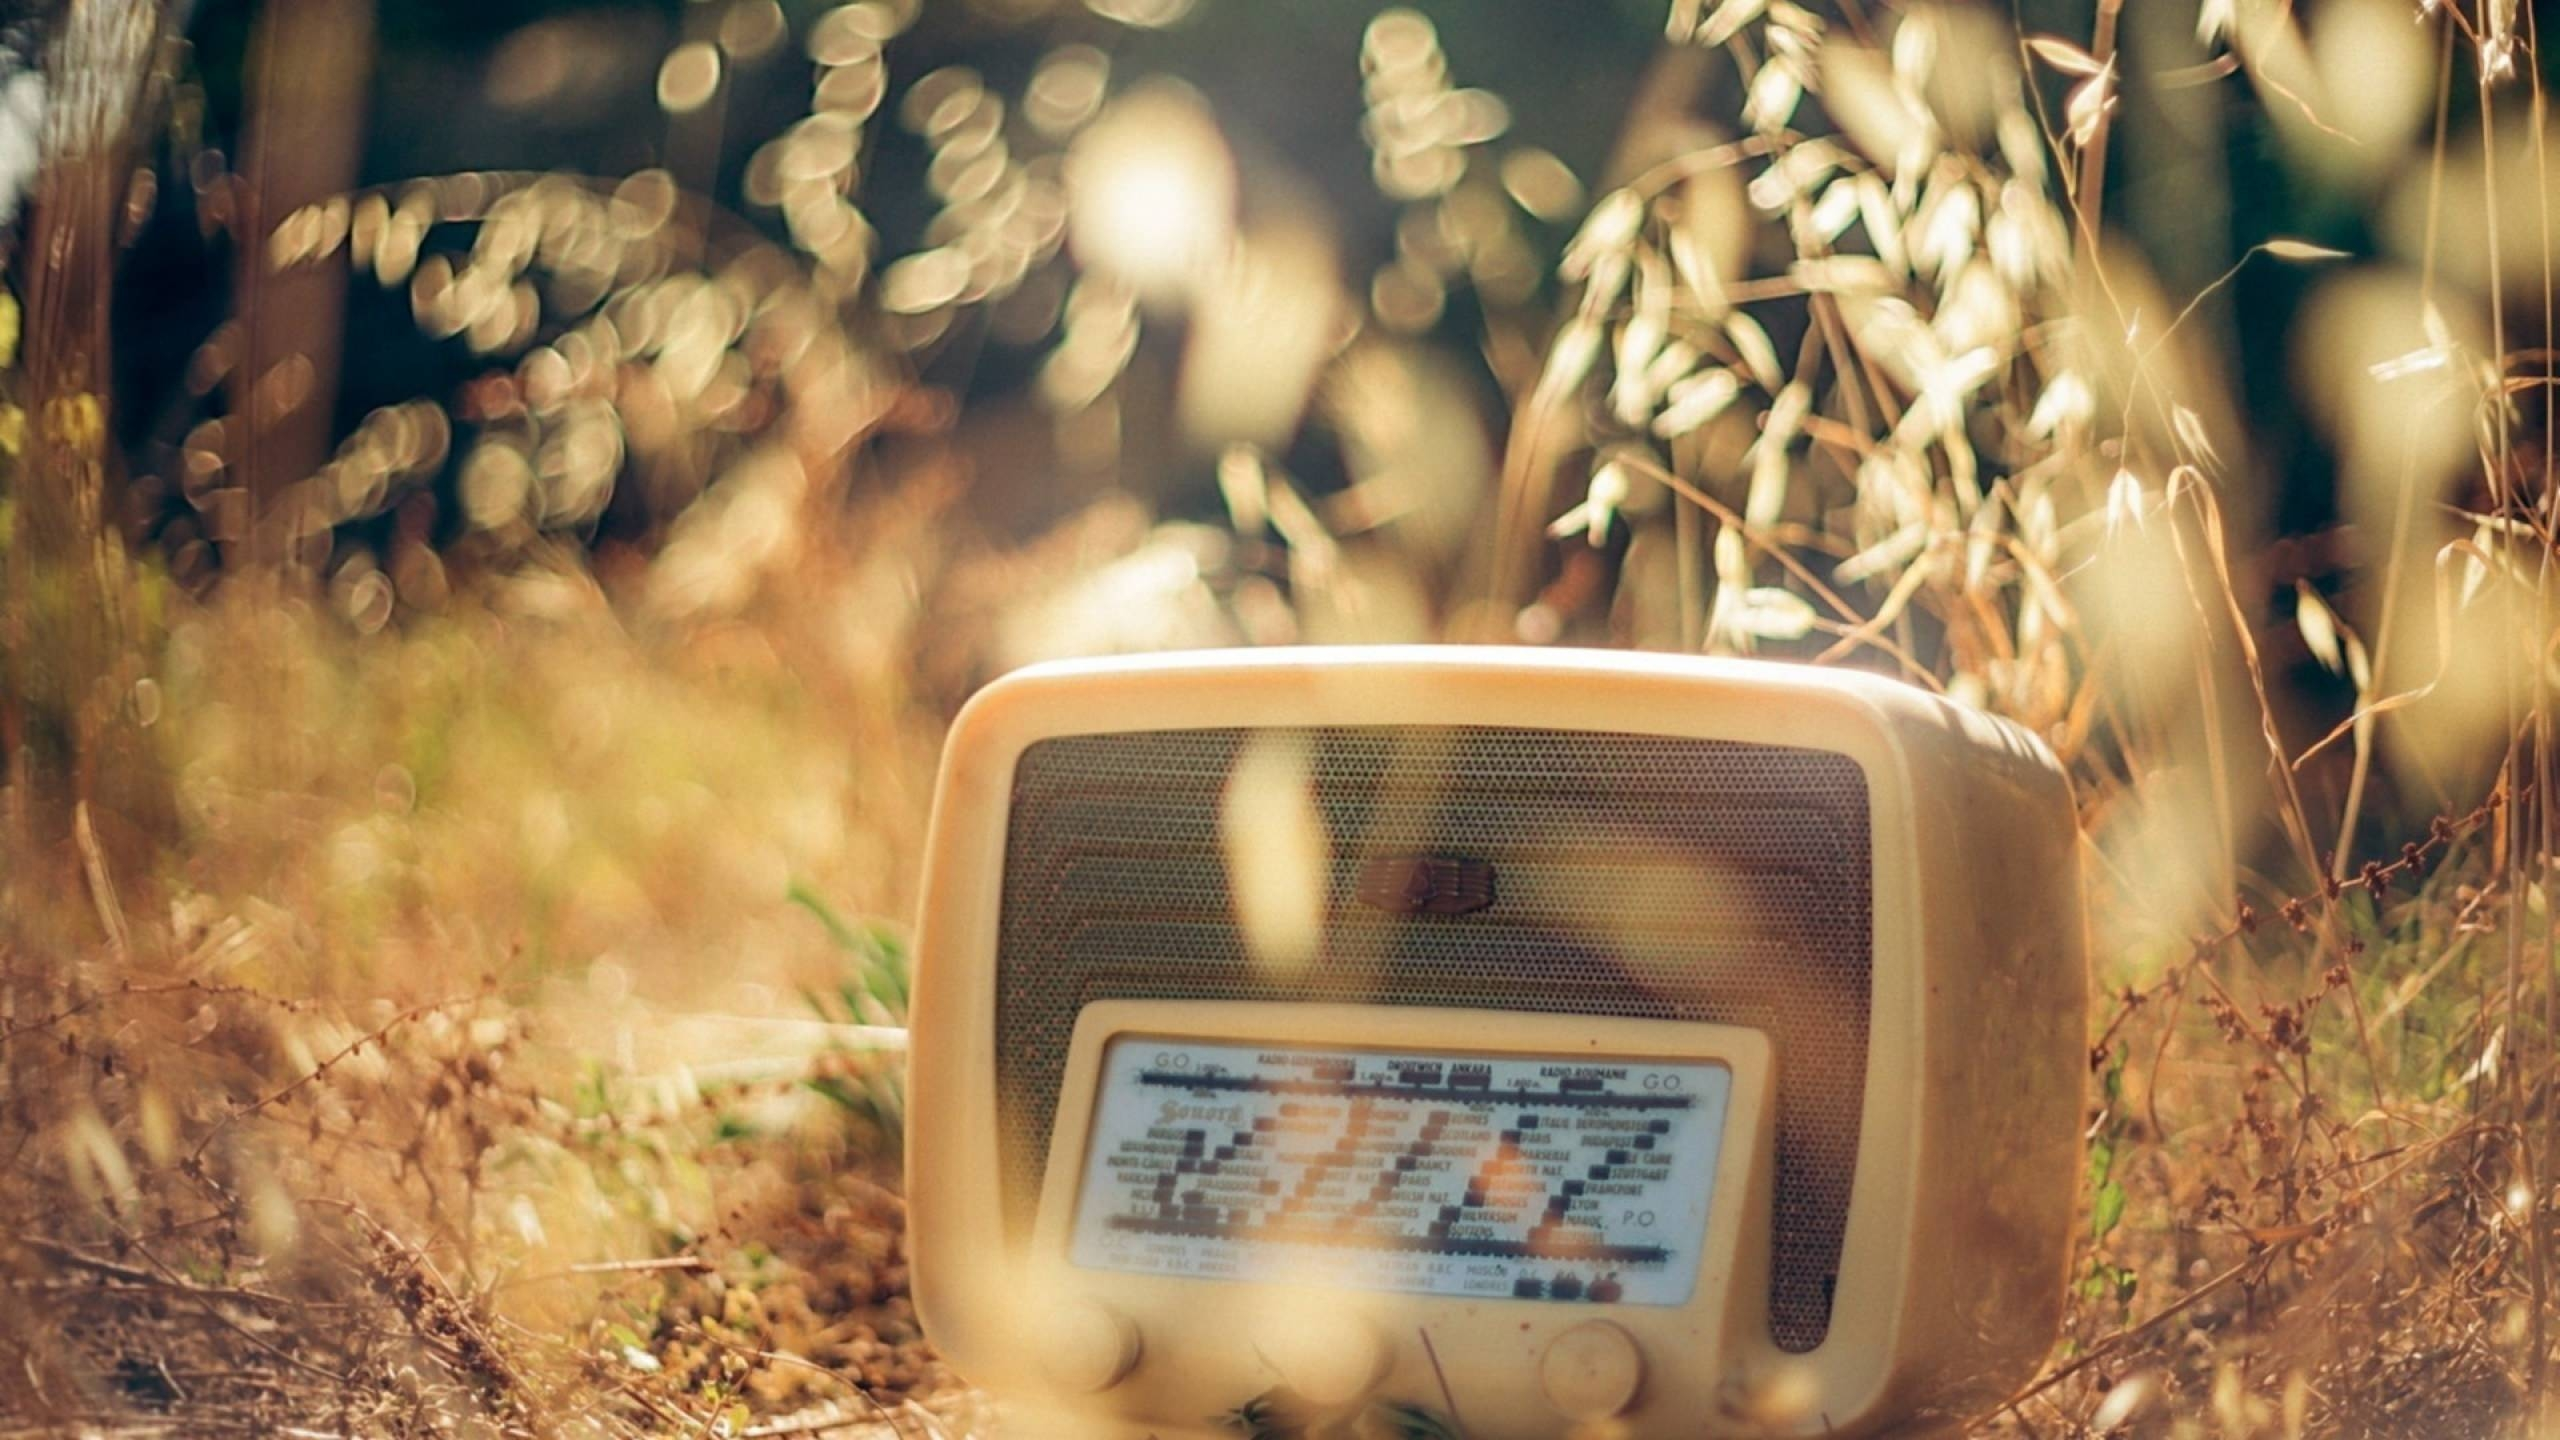 light_nature_vintage_radio_bokeh_photographers_Wallpaper_2560x1440_www.wallpaperwind.com